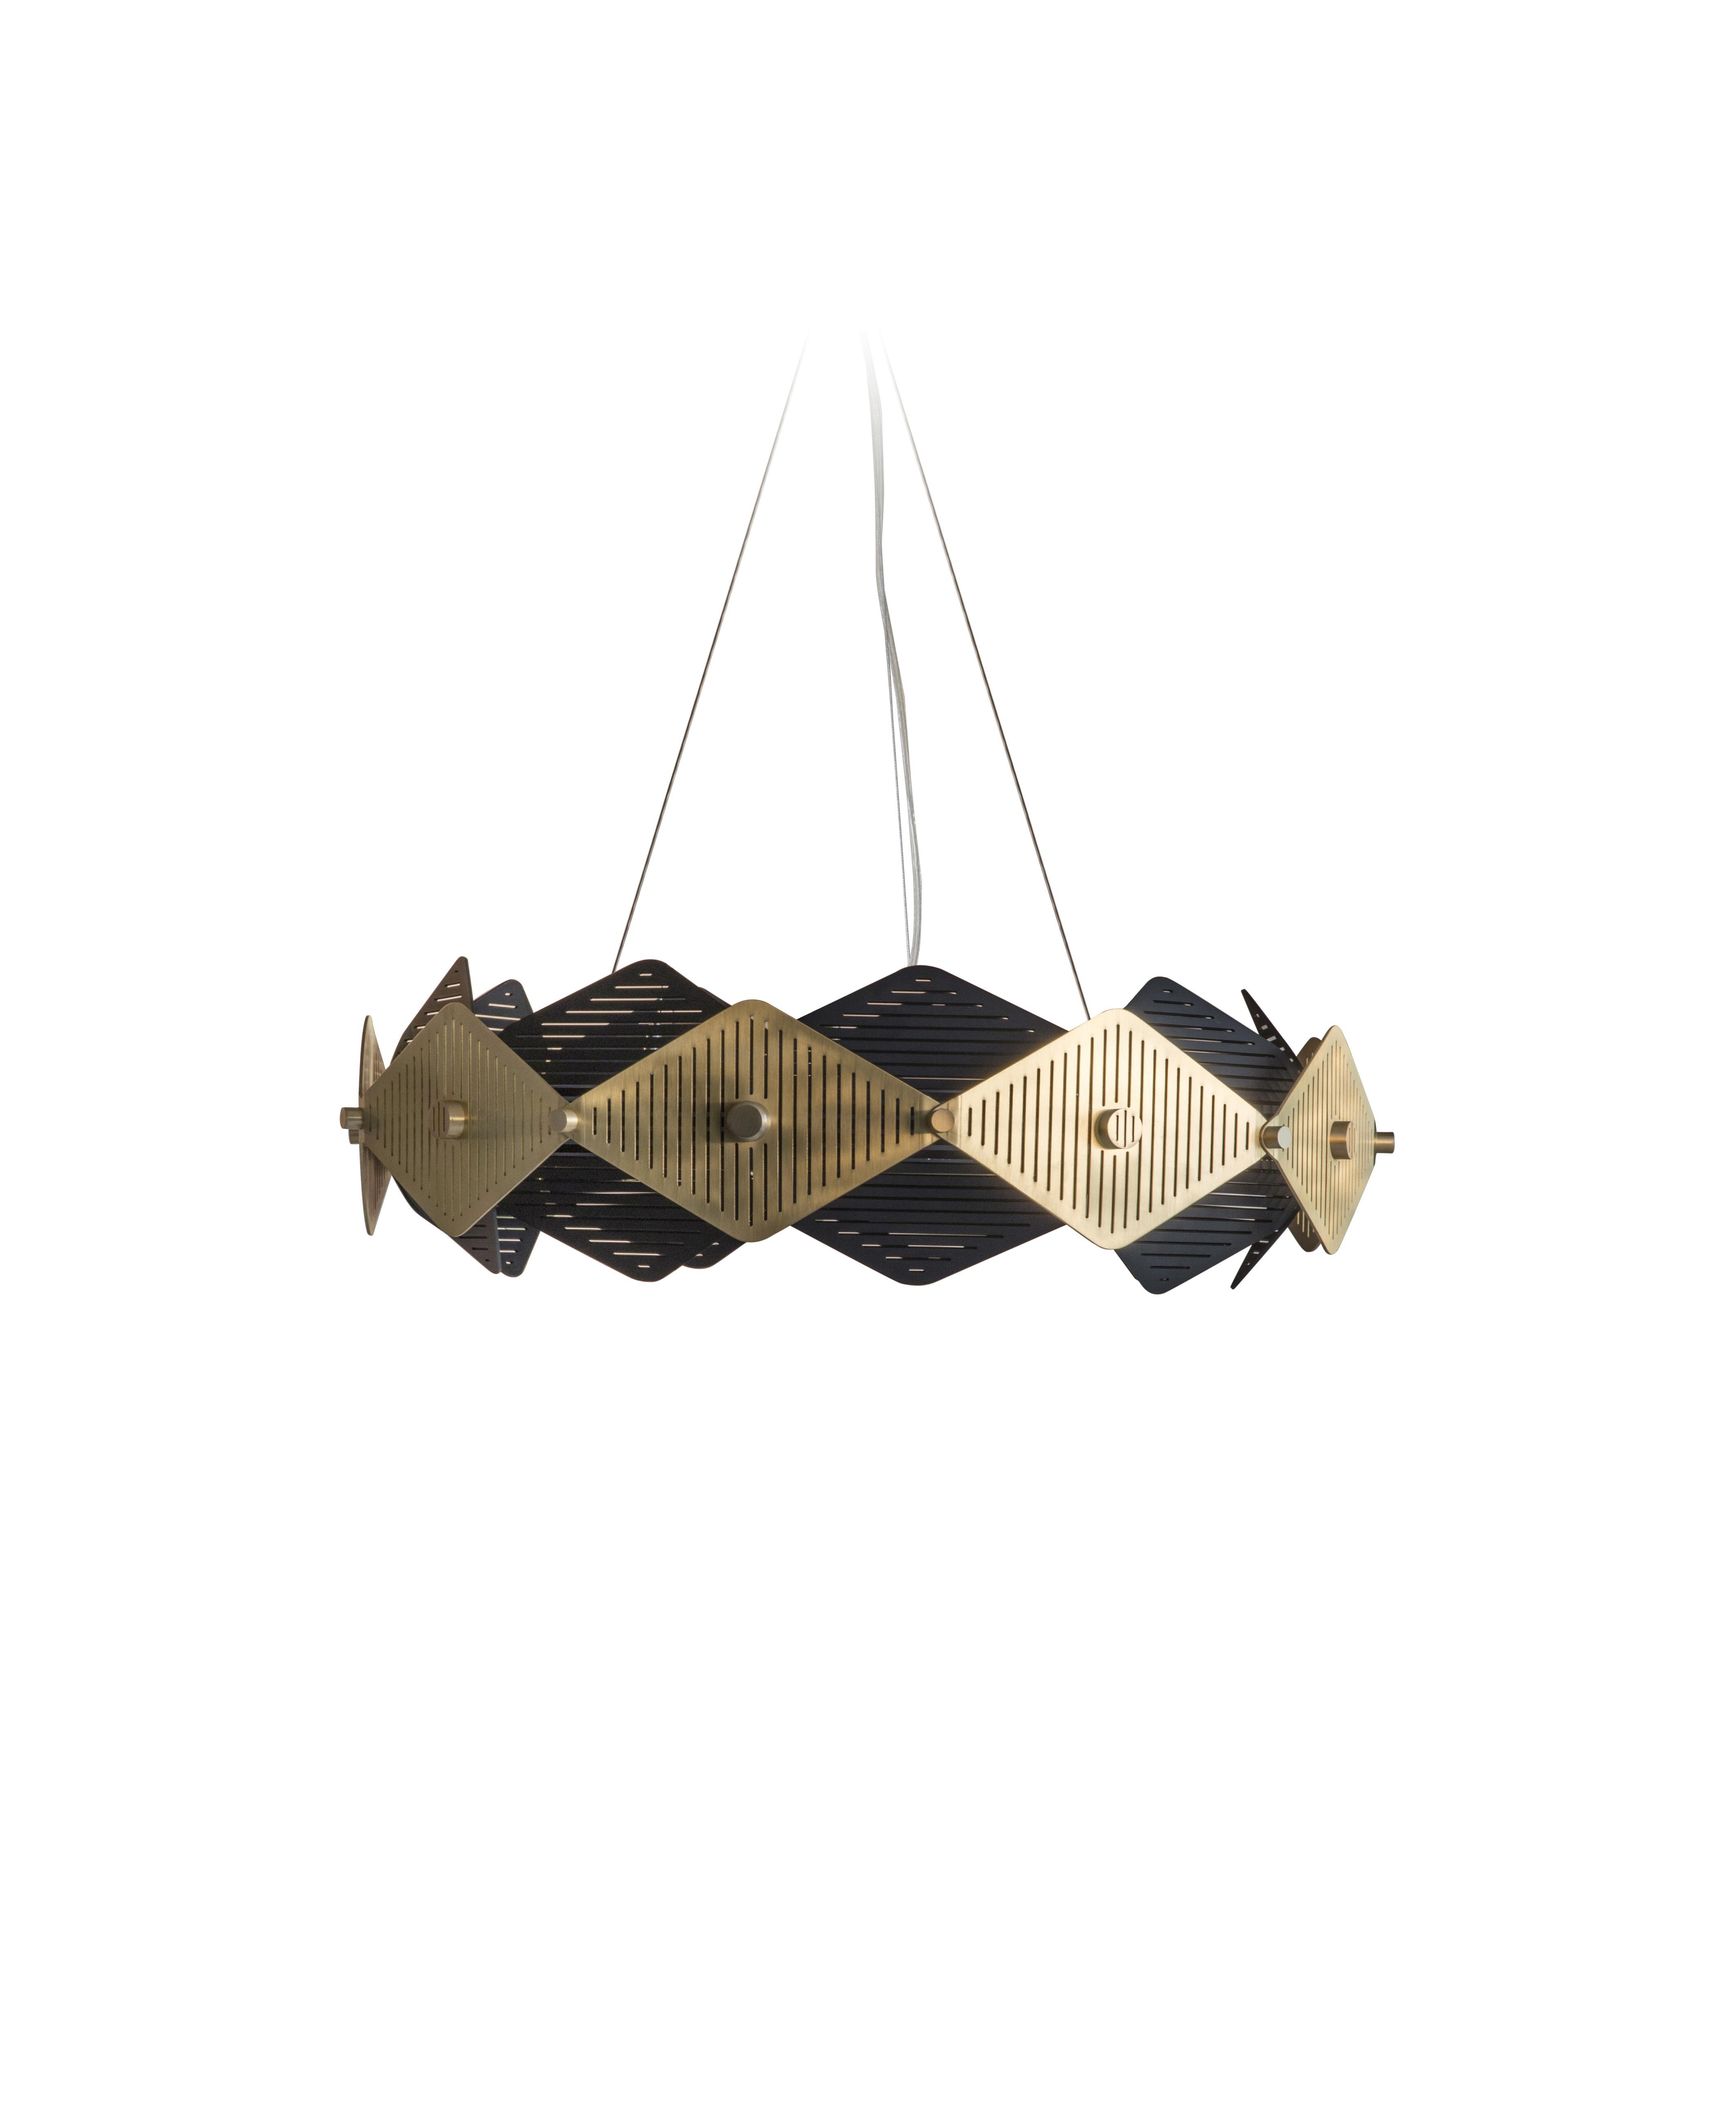 Rote pendant Light - A lattice work of slotted laser cut scales in satin brass and black adorn an internally and externally illuminated brass ring. In this modest scale it is perfect for creating a focal point over smaller dining tables or for use in multiples. A built in Bluetooth module enables total dimming control of the integral LED light source from an app on any smart device.  | Matter of Stuff